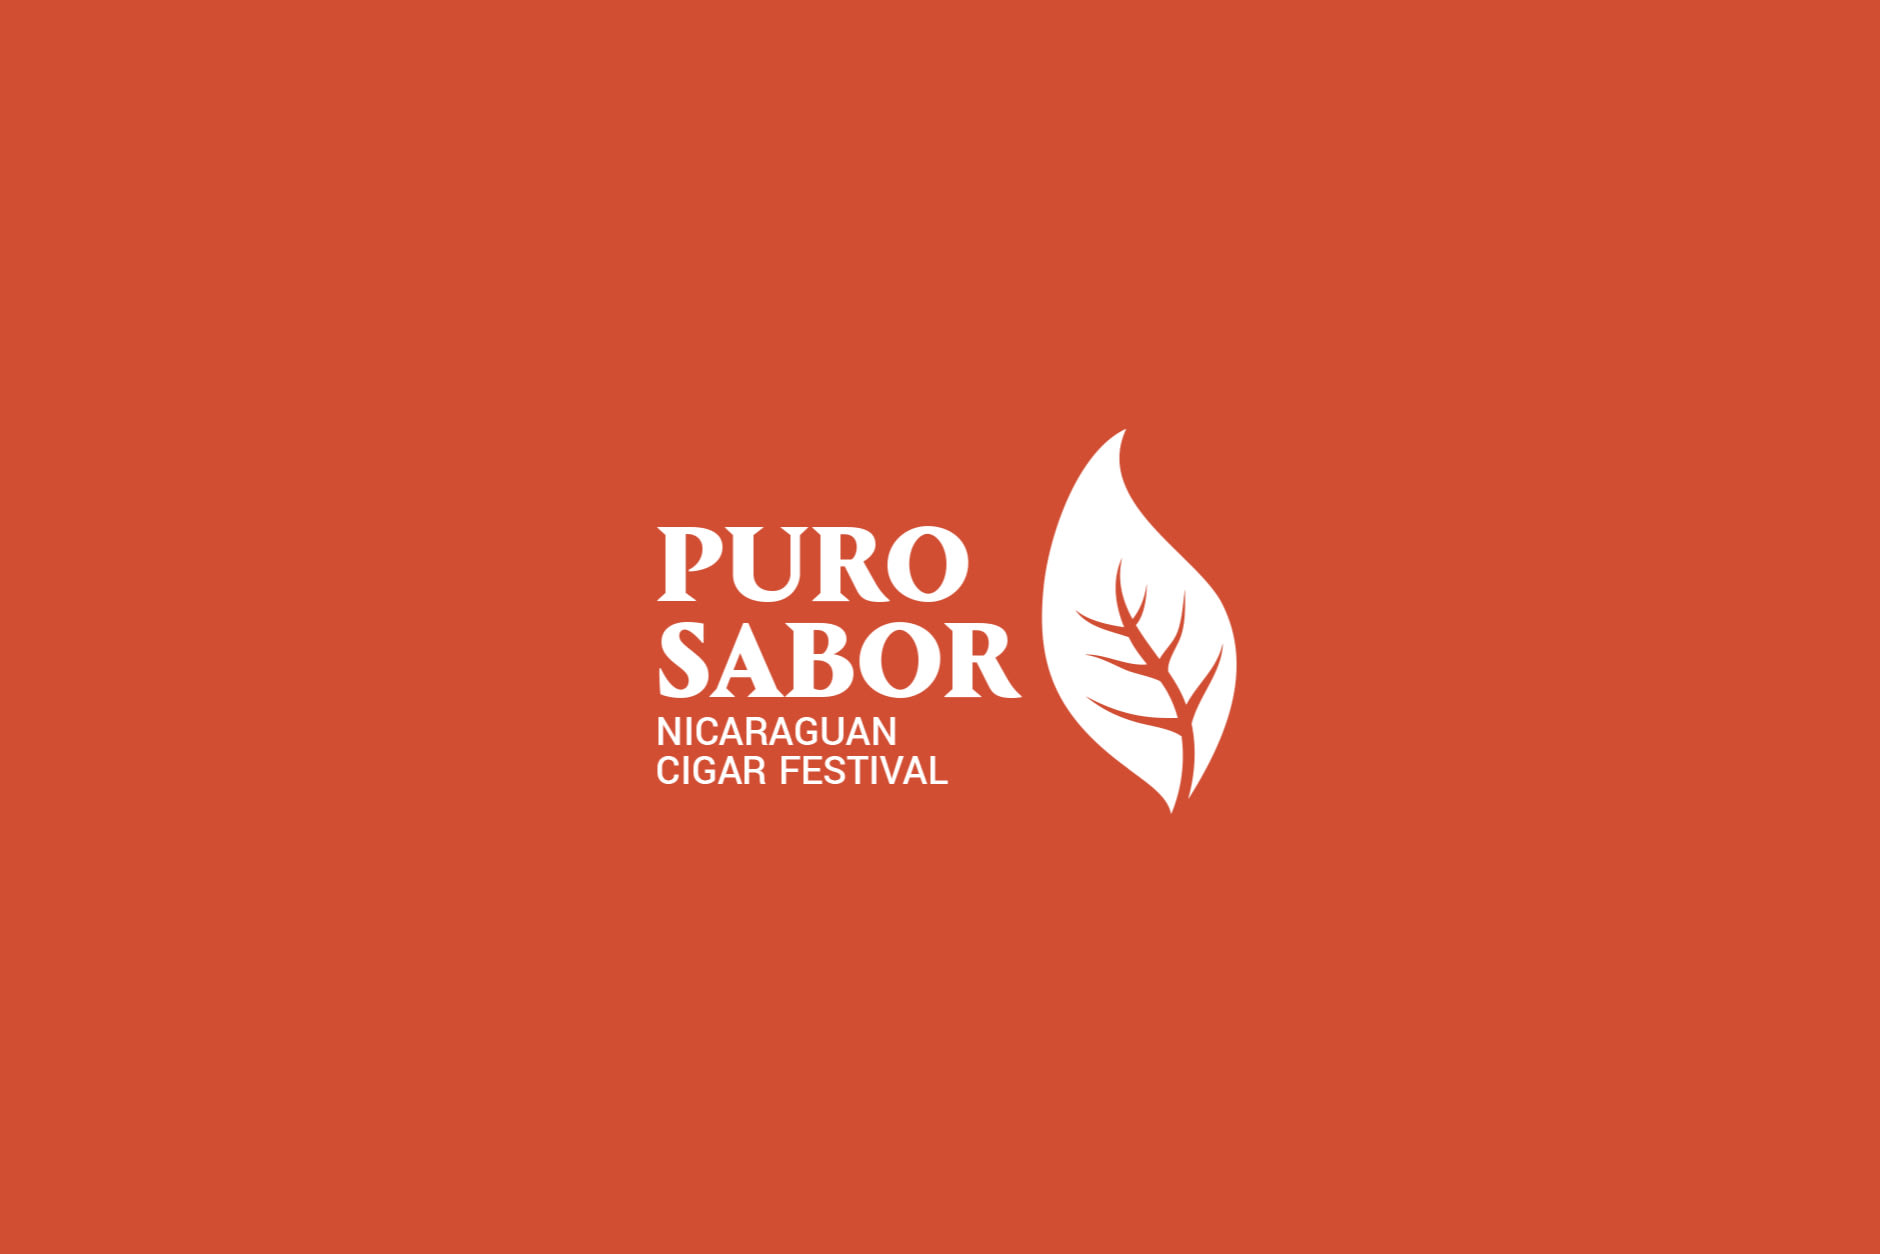 Nicaragua's Puro Sabor 2021 Canceled Featured Image